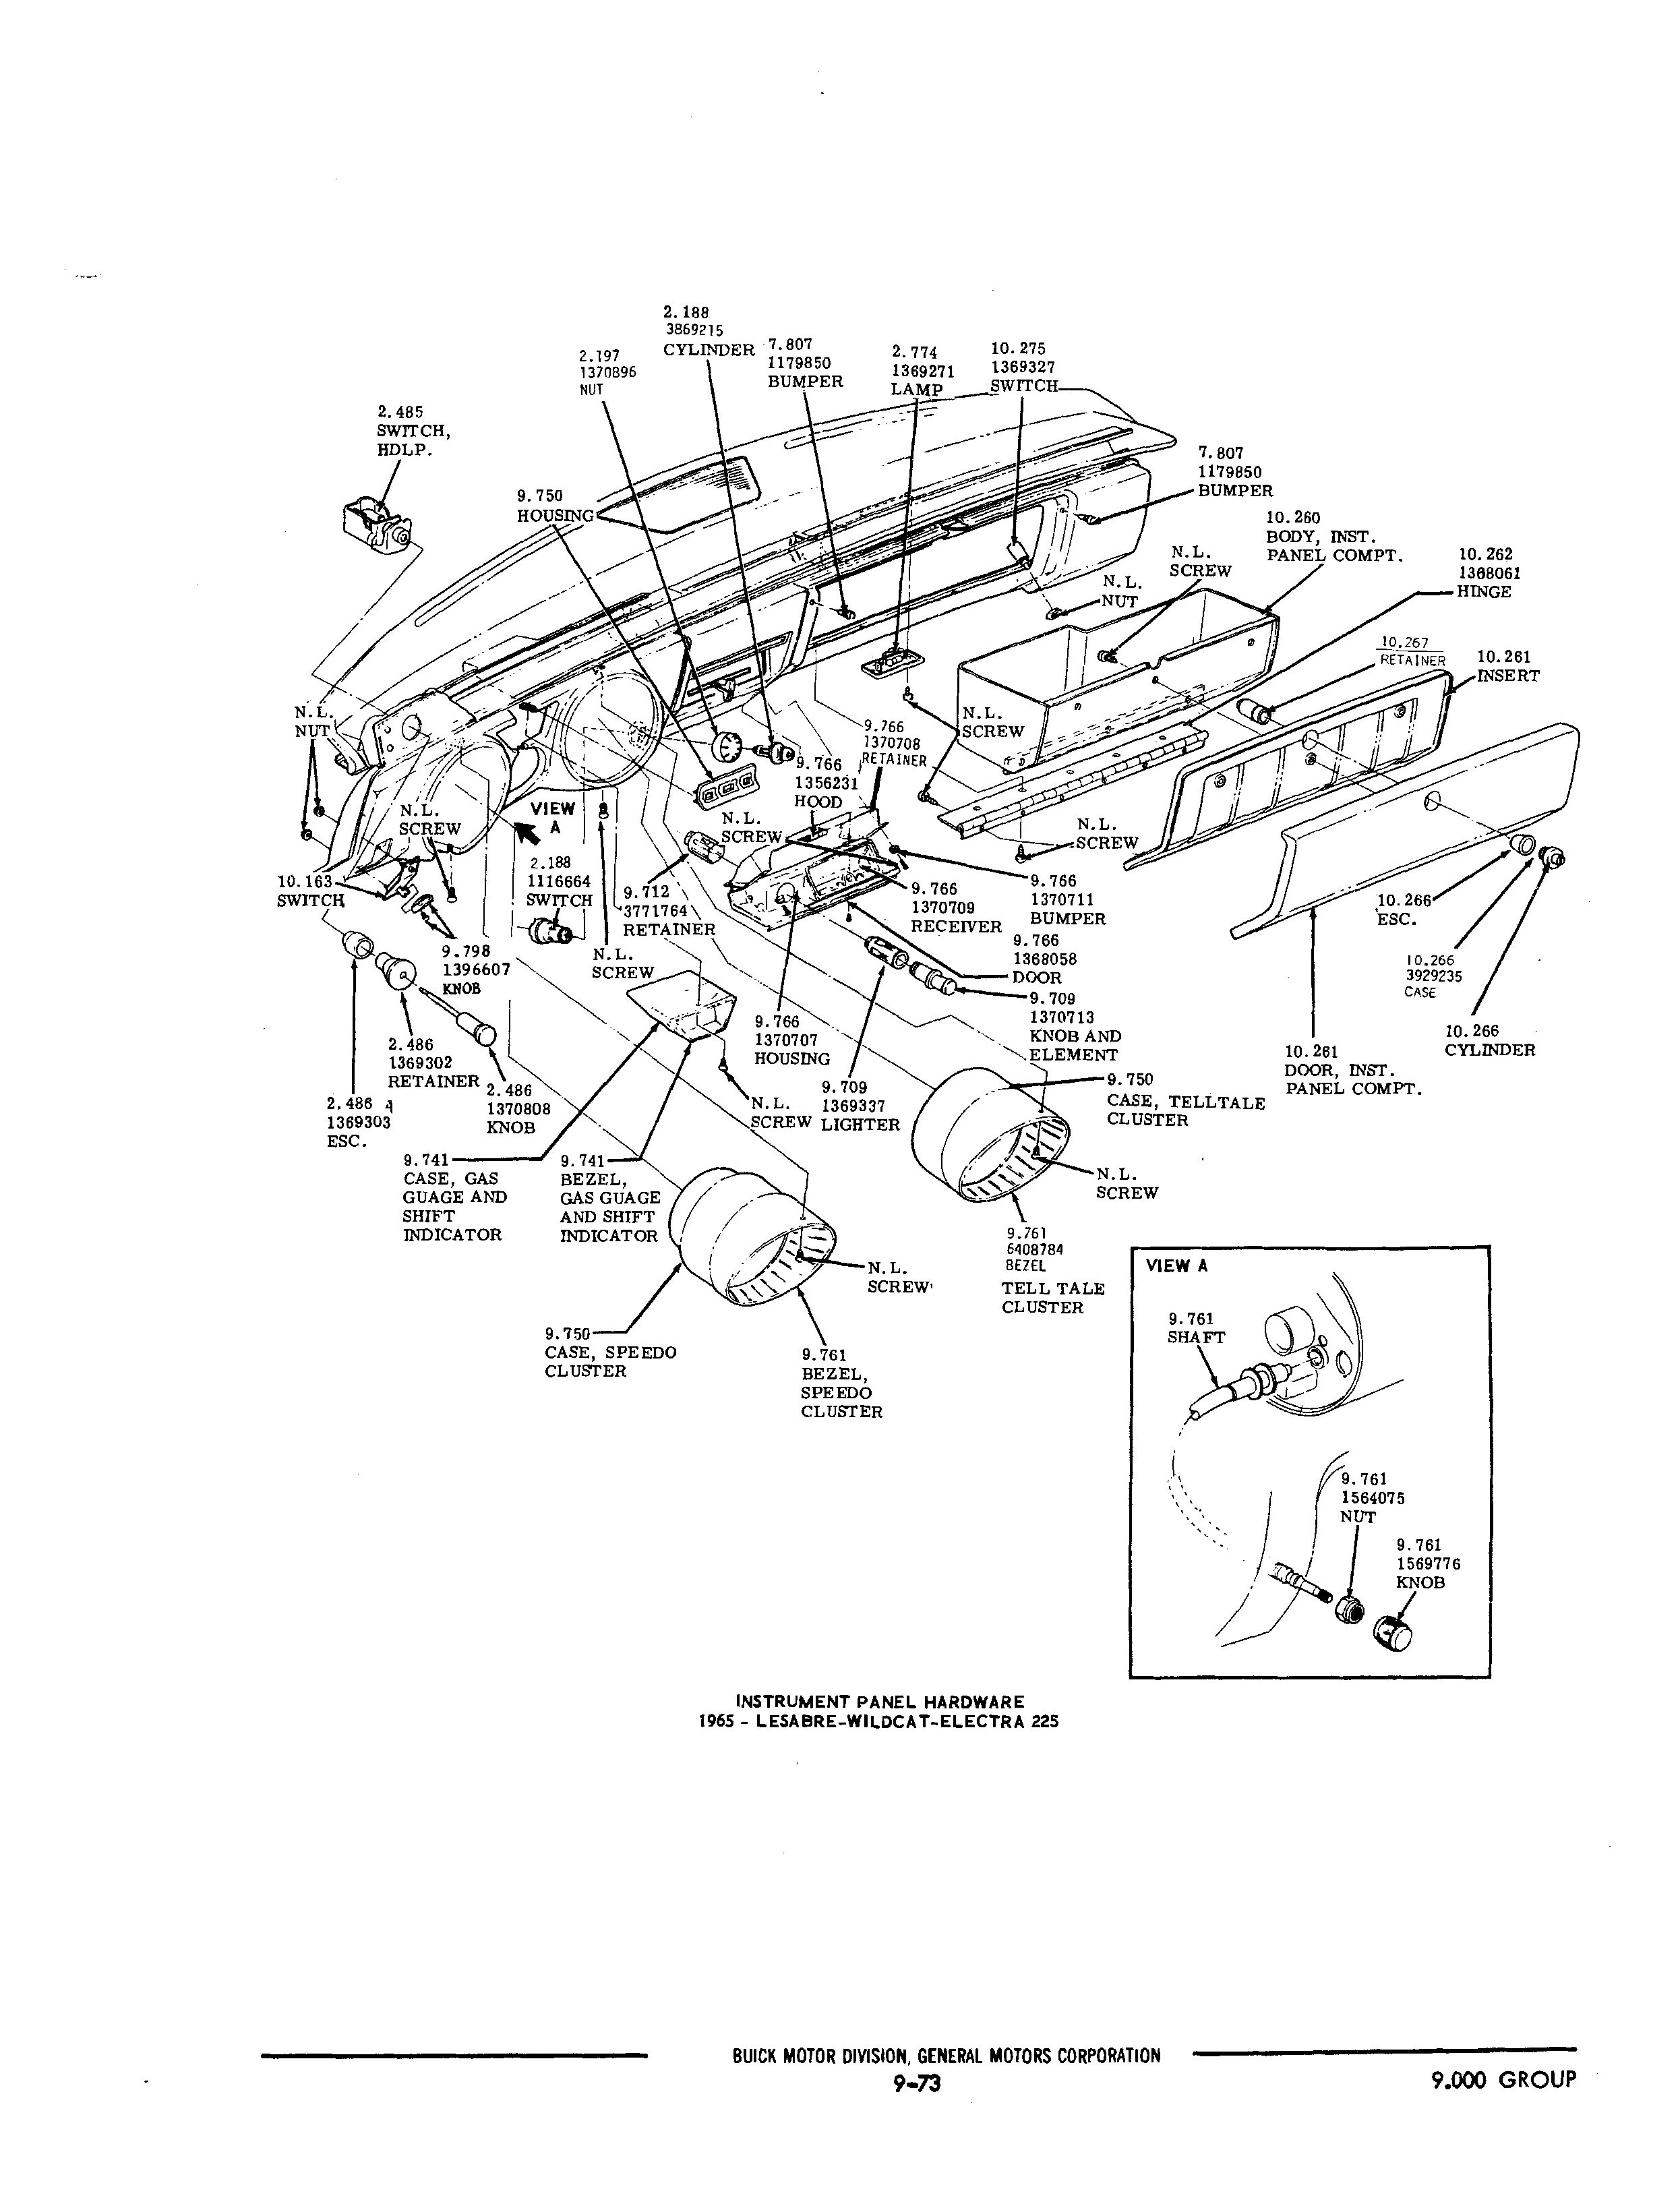 Buick Chassis And Body Illustration Catalog 1940 1972_page_0234_jpg 1950 ford truck wiring harness,truck free download printable,1951 Desoto Headlight Wiring Diagram